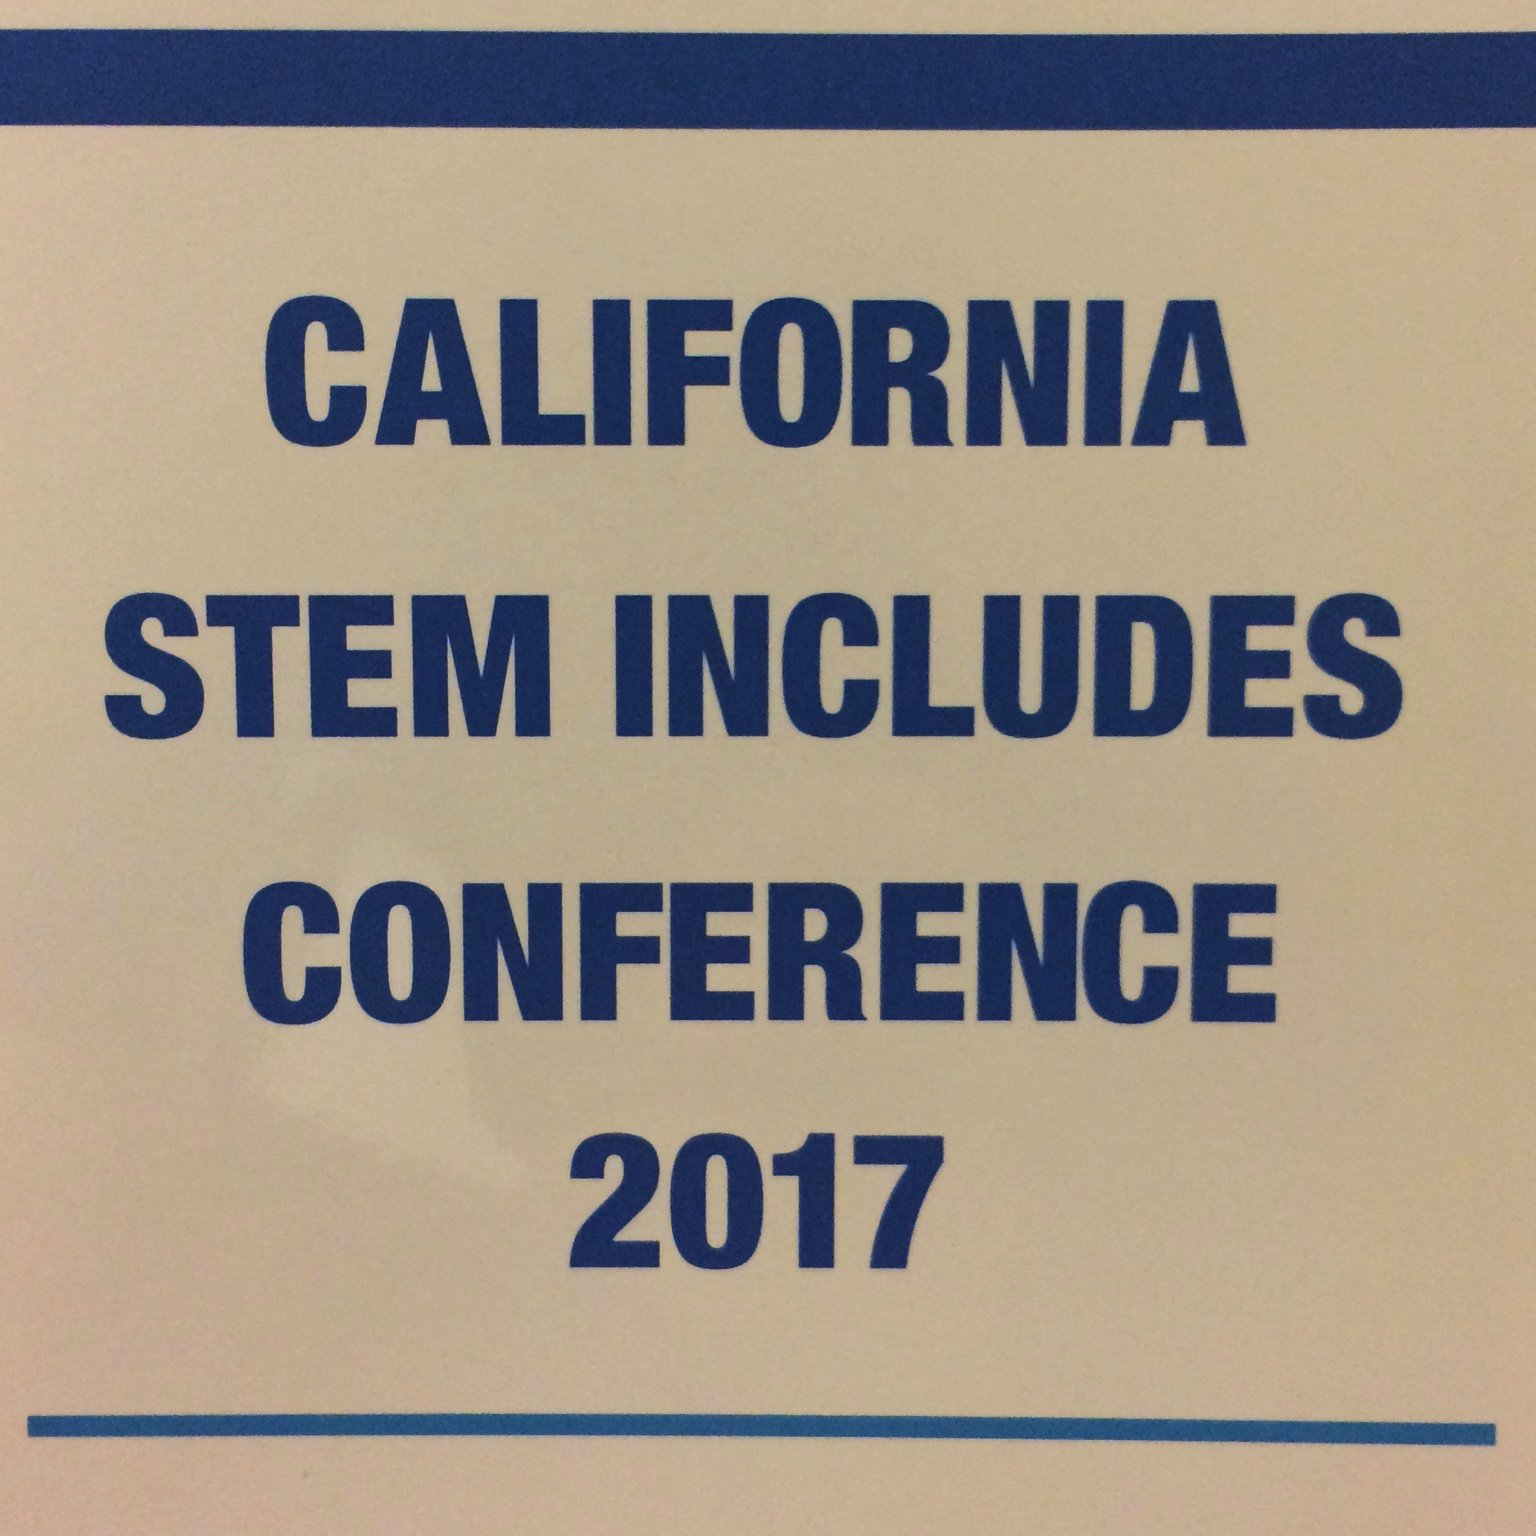 attending @UCirvine hosted @NSF #CSIC17 California Stem Includes Conference https://t.co/sZvG6R7XTd https://t.co/N5RU2QEfH0